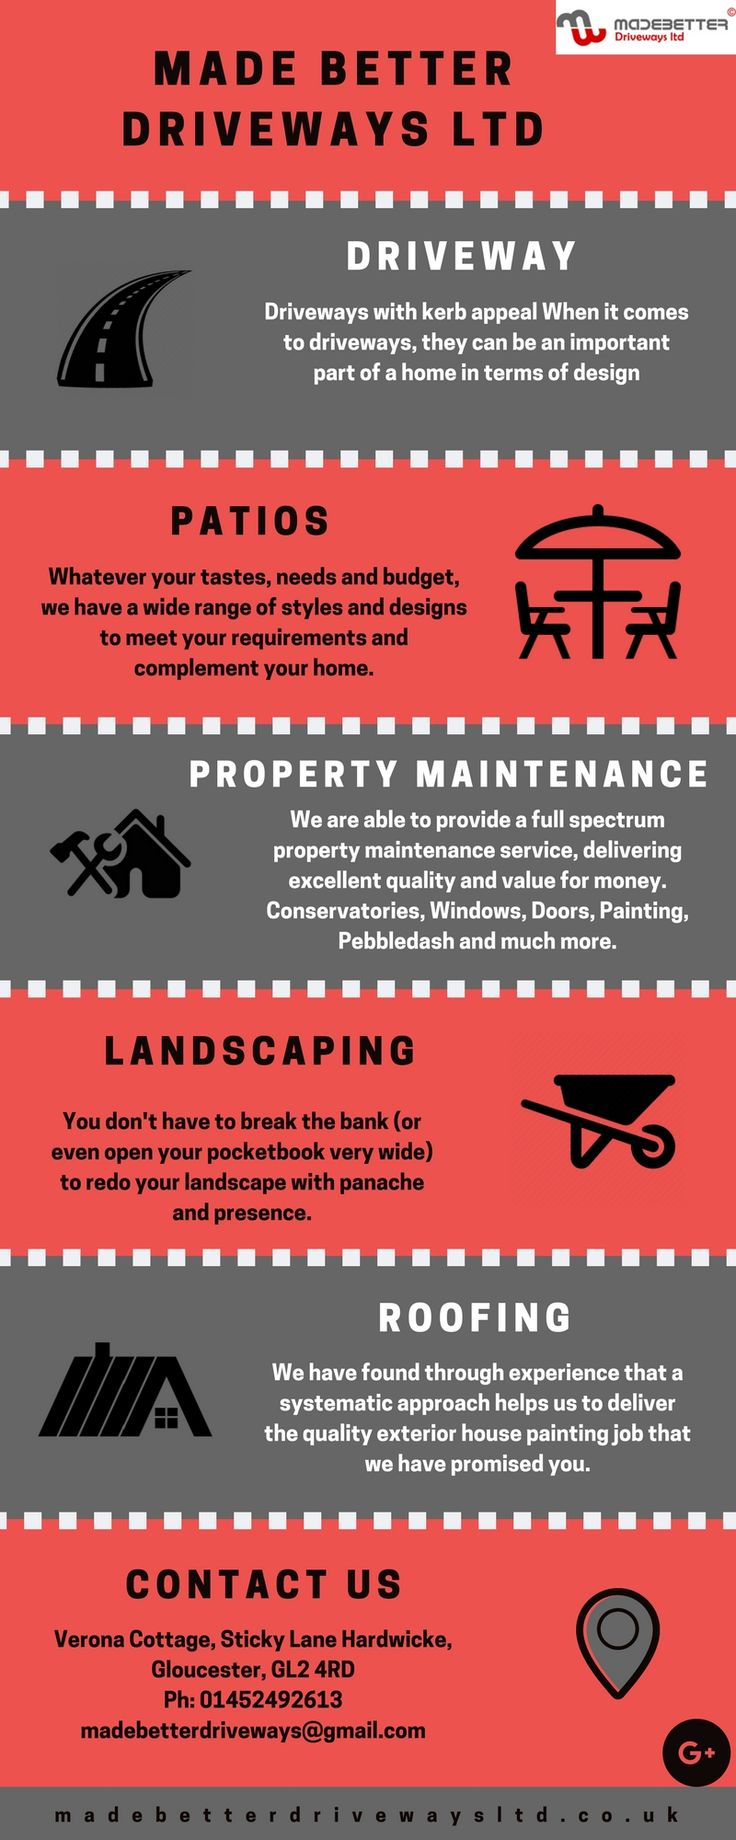 Made Better Driveways Ltd is the best Paving and Landscaping service providers in Gloucester